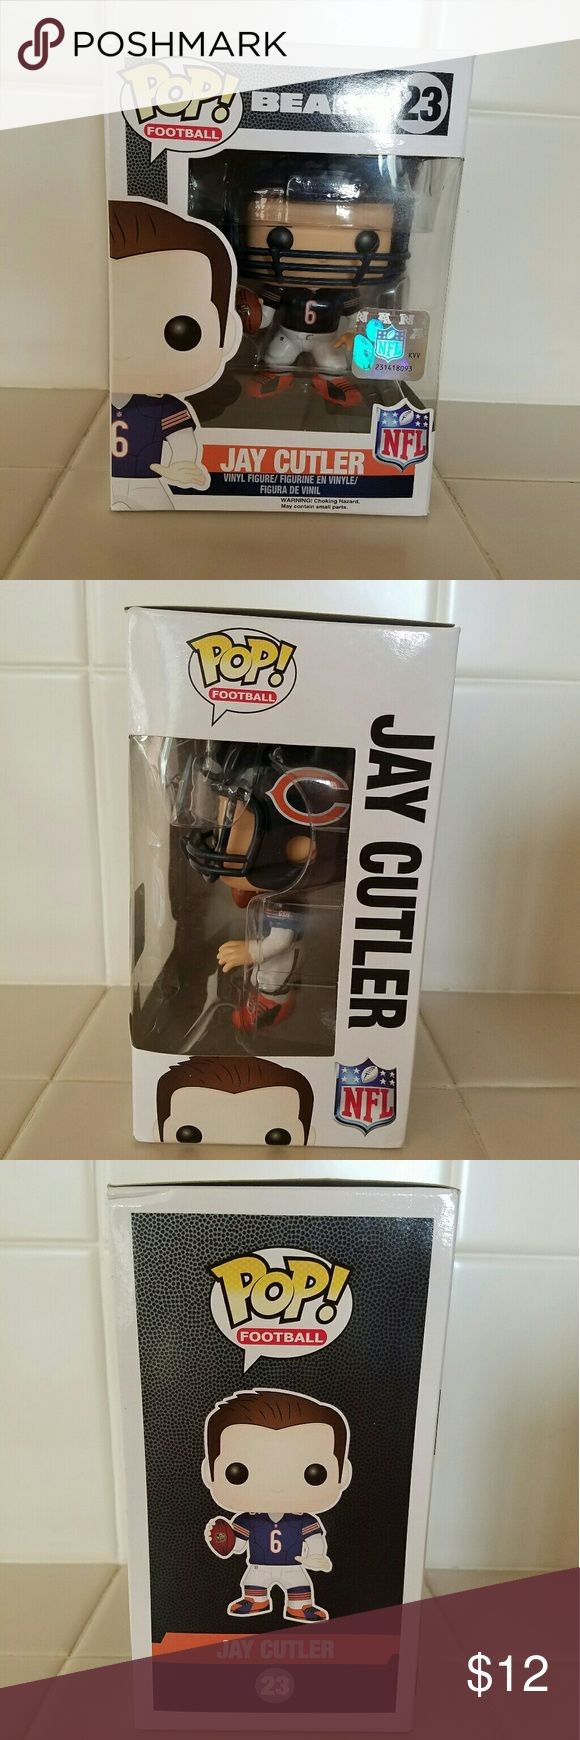 Funko Pop NFL Football Jay Cutler #23 Box has a small bent at the corners Other